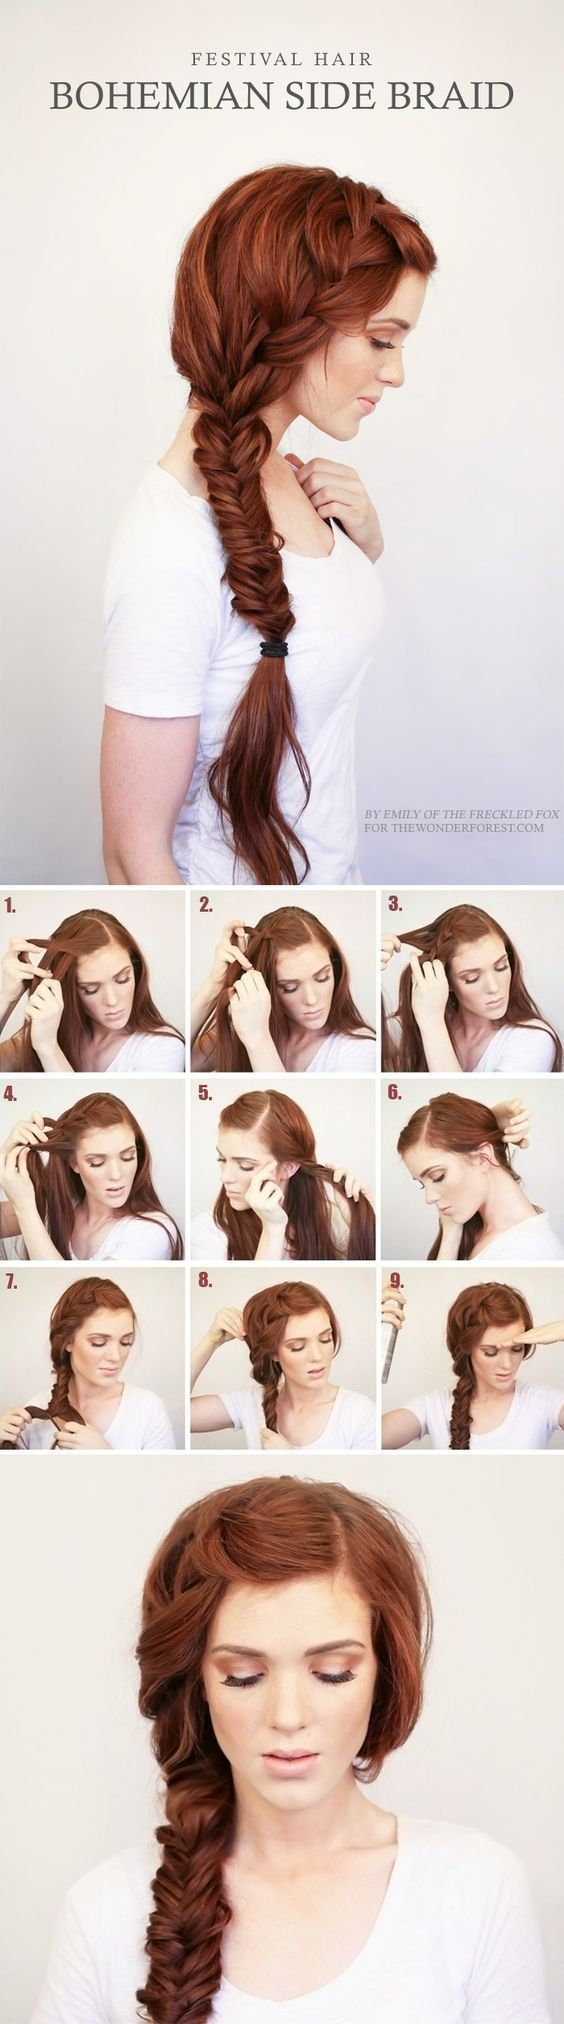 10 Best DIY Wedding Hairstyles with Instructions